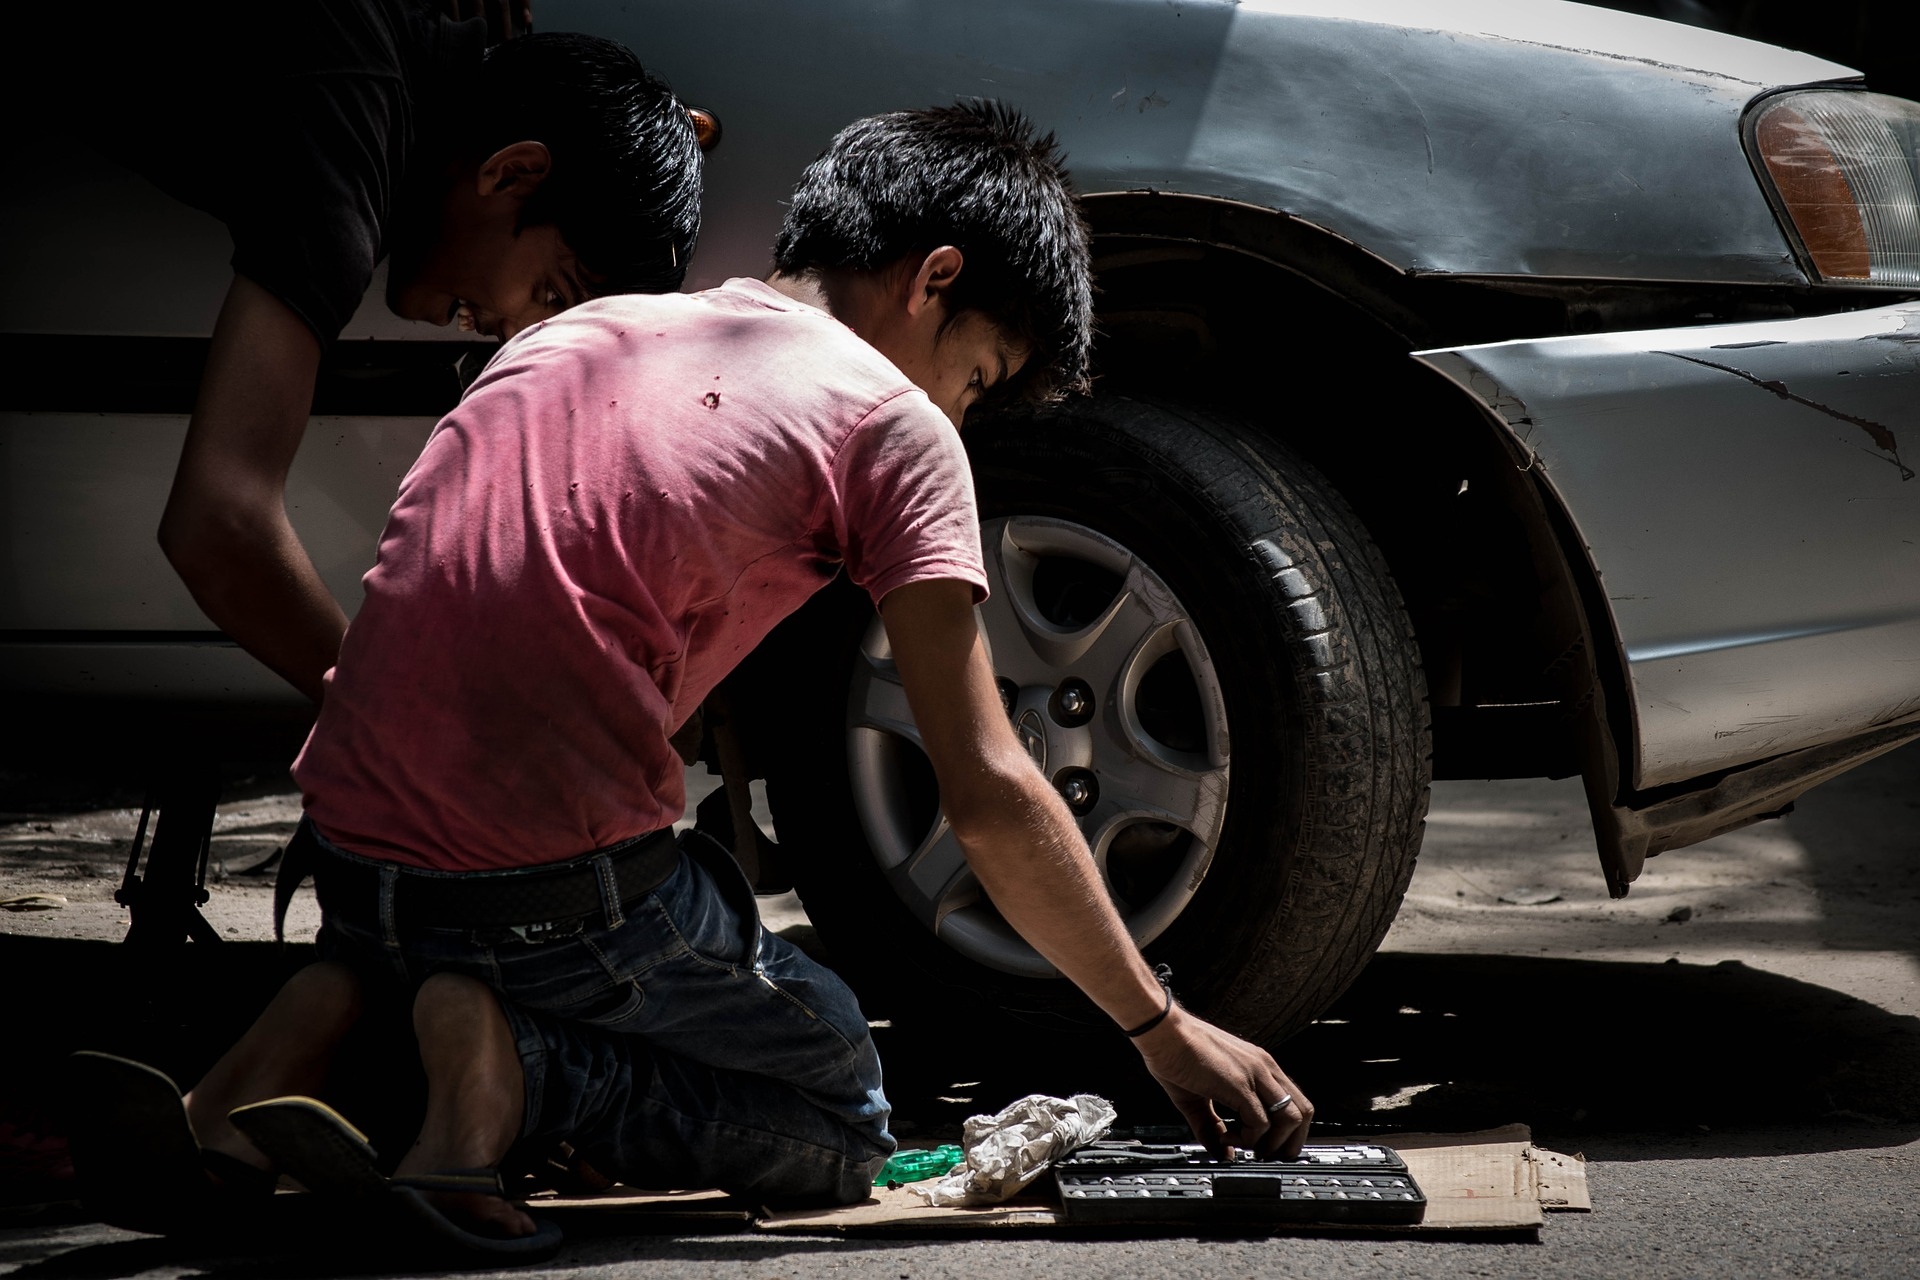 UN declares 2021 'International Year for the Elimination of Child Labour'